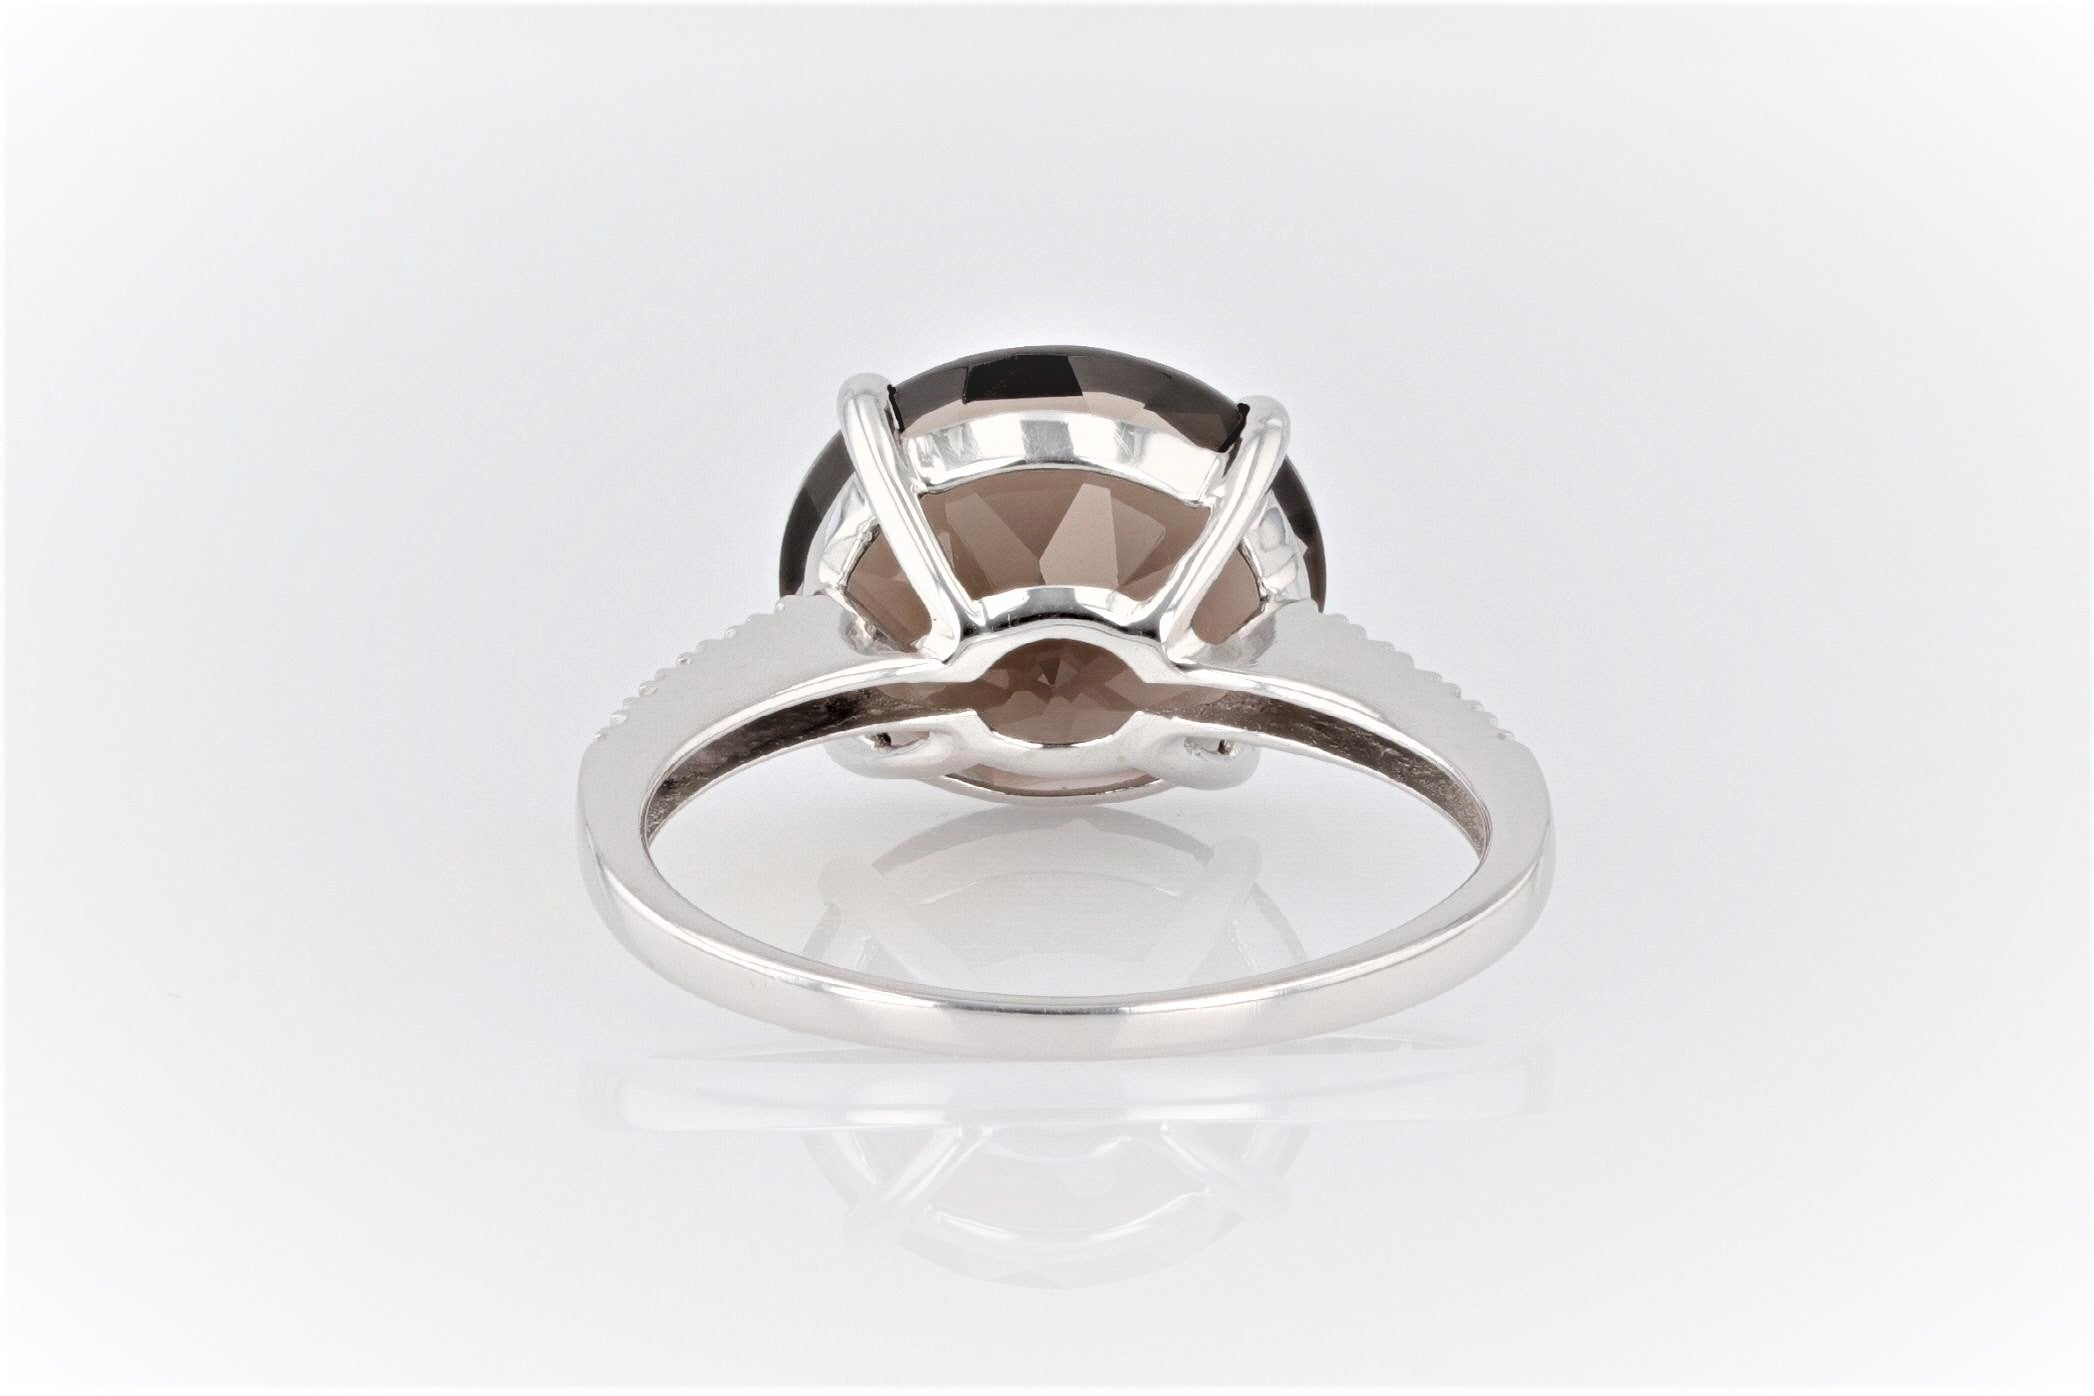 14K Women's White Gold (Stamped) Shank Dress Ring